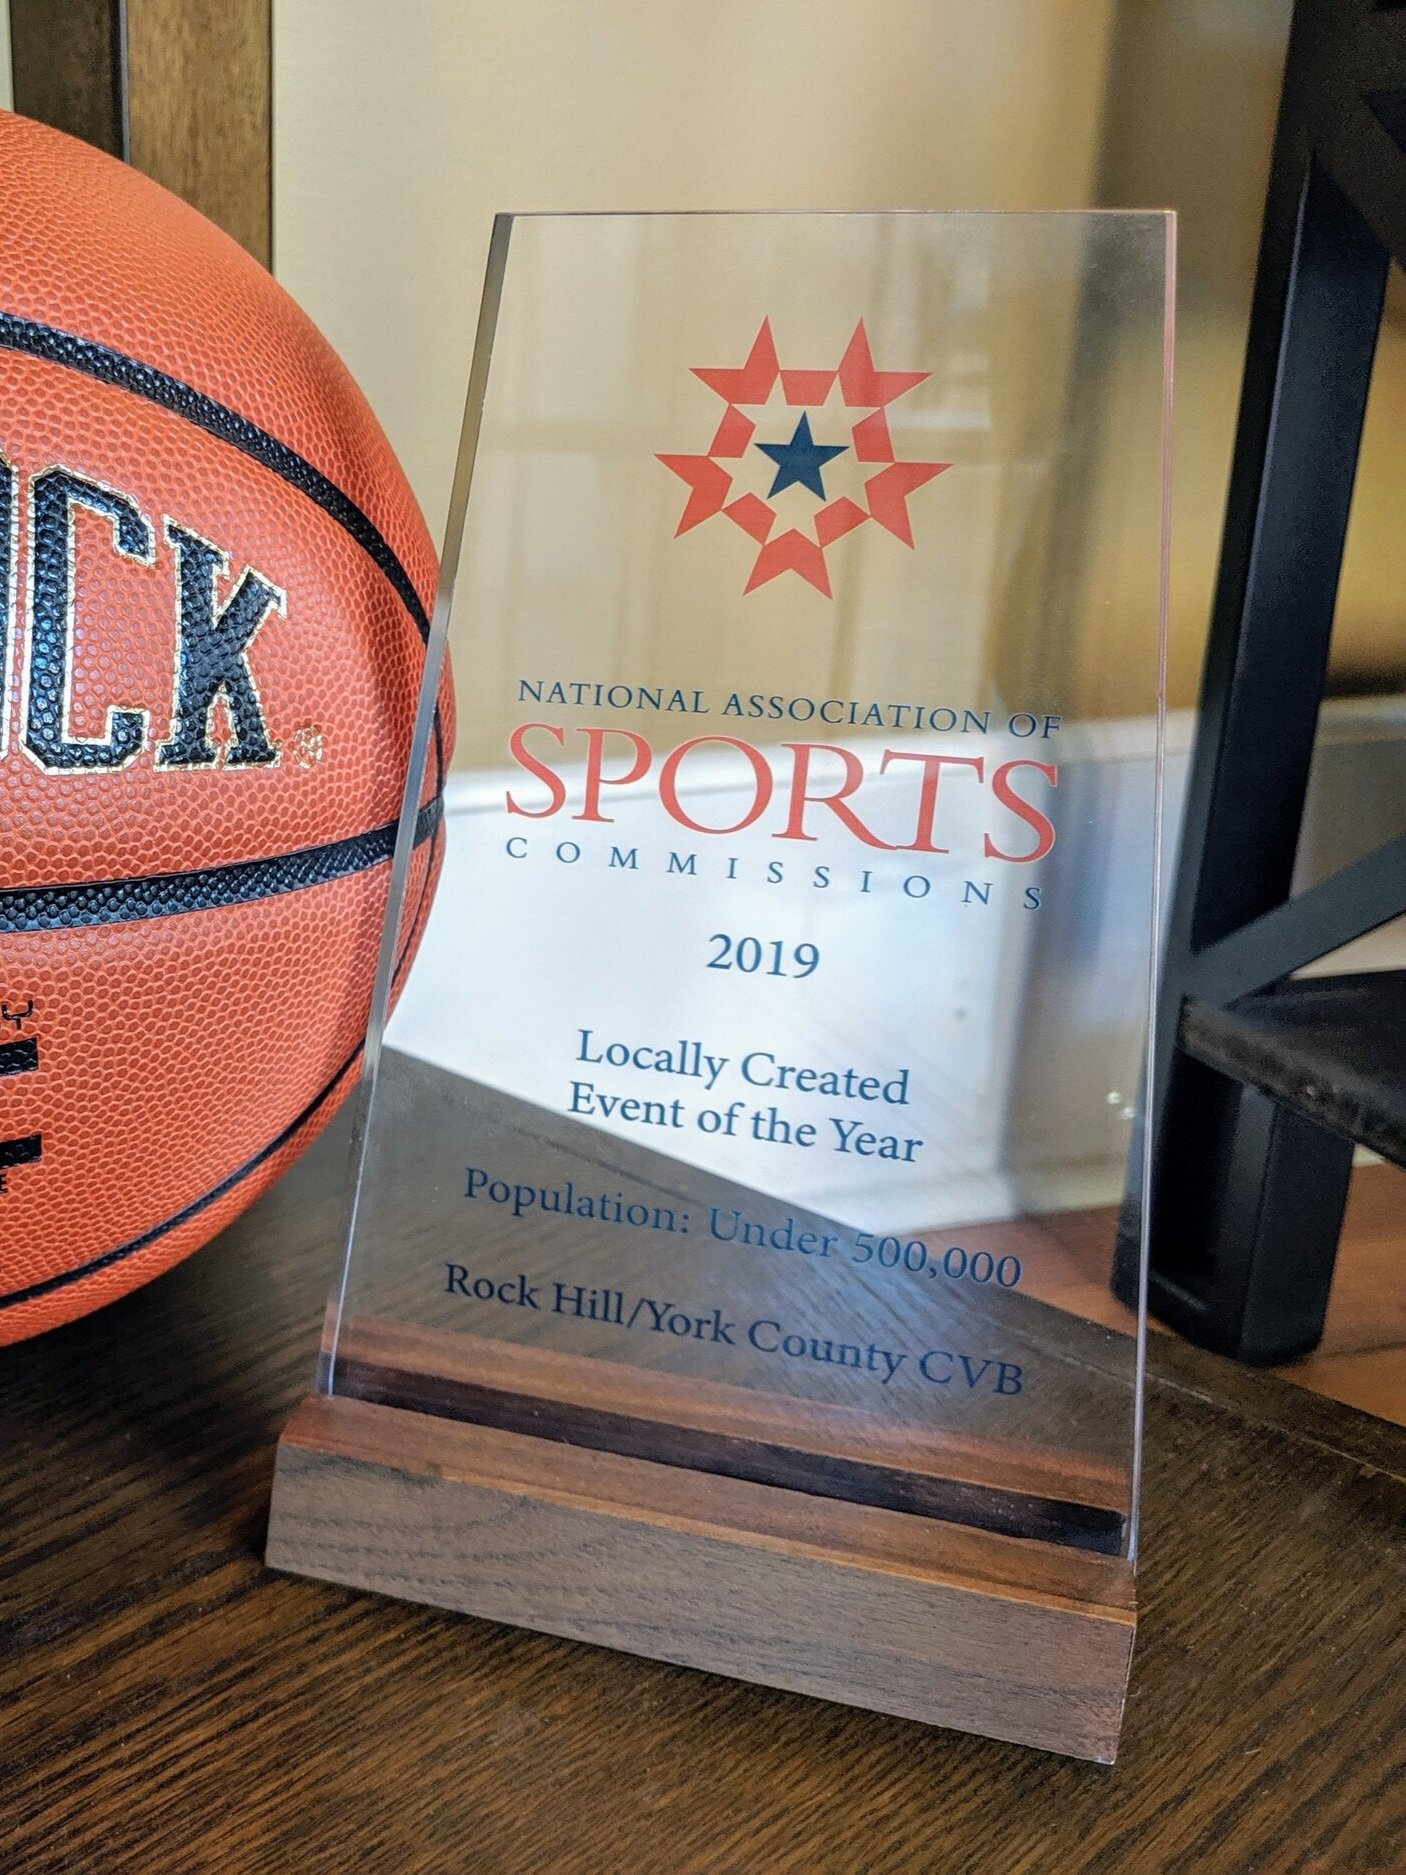 Battle At The Rock - Visit York County first hosted 19 teams at the 2018 Battle At The Rock, presented by Phenom Hoop Report. The two-day event brought sold-out crowds at Nation Ford High School. The National Association of Sports Commission even awarded VIsit York County with the the 2019 Locally Created Event of the Year. Visit York County plans to make Battle At the Rock an annual showcase highlighting some of the best high school basketball across the country.